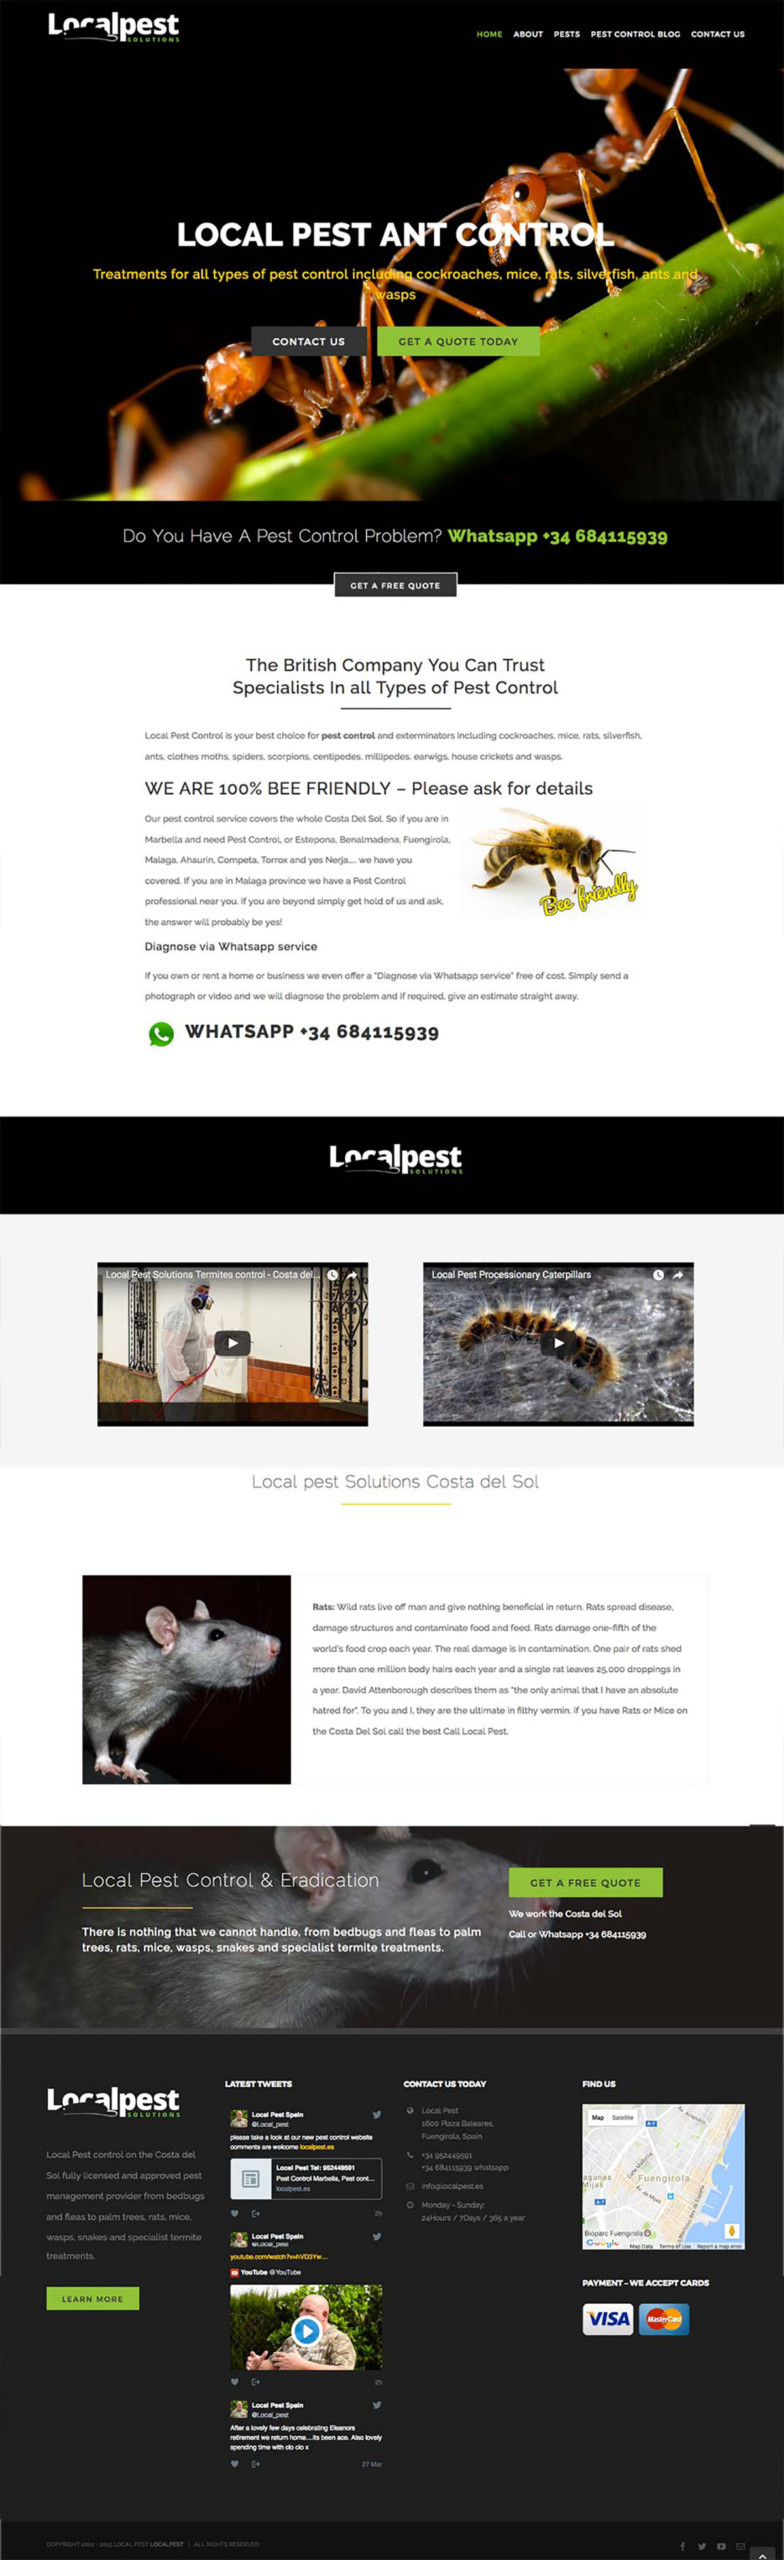 local pest control services marbella pest control wordpress design